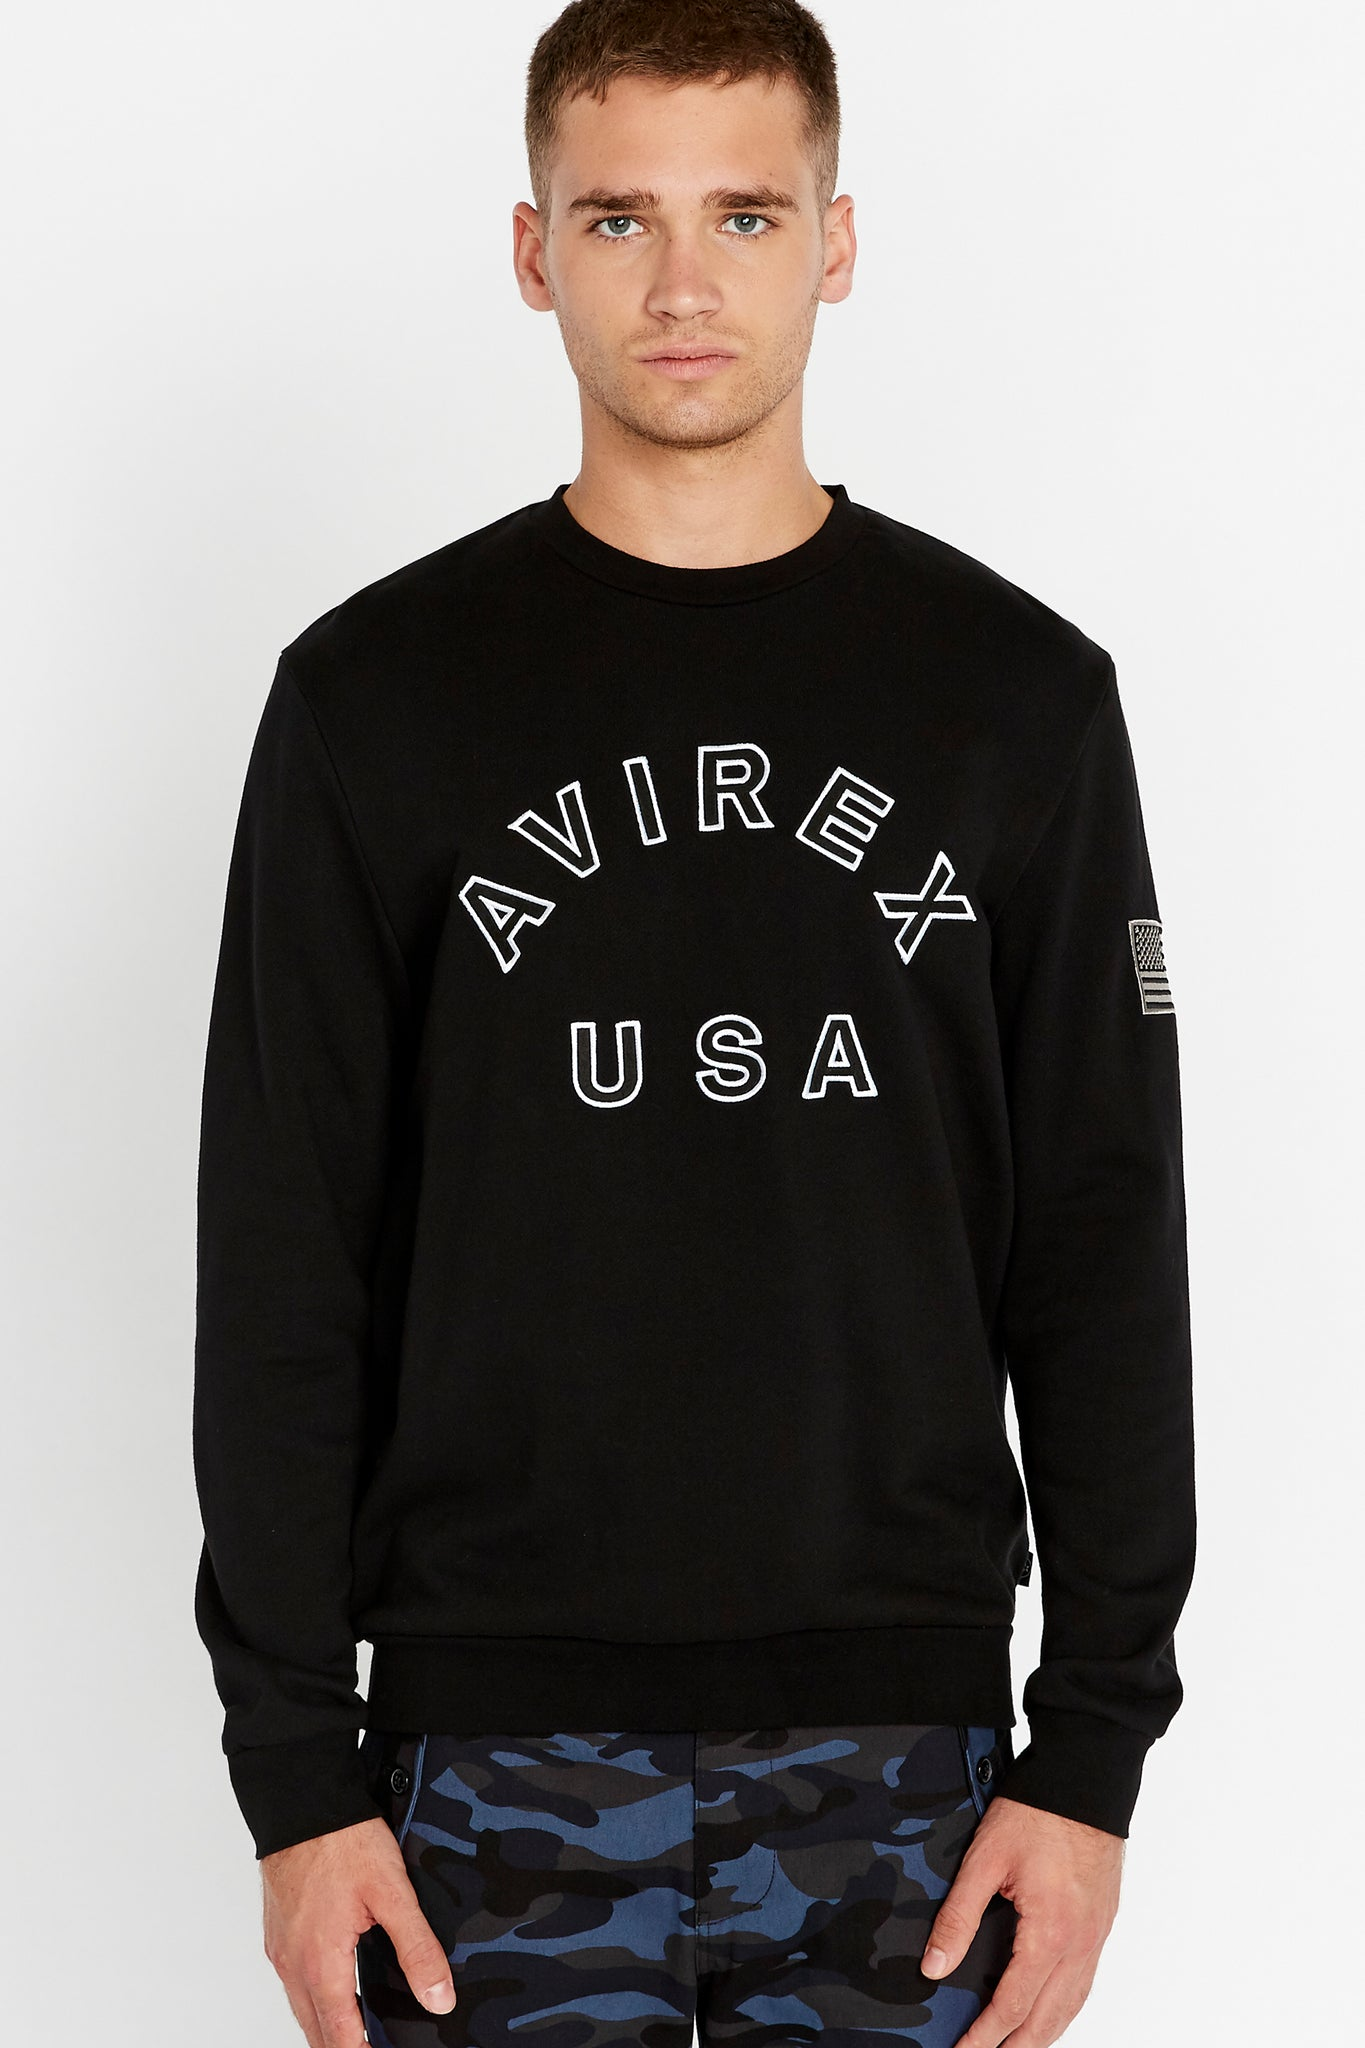 Men wearing a black long sleeve crew neck sweater with bold front text and a patch on the left sleeve